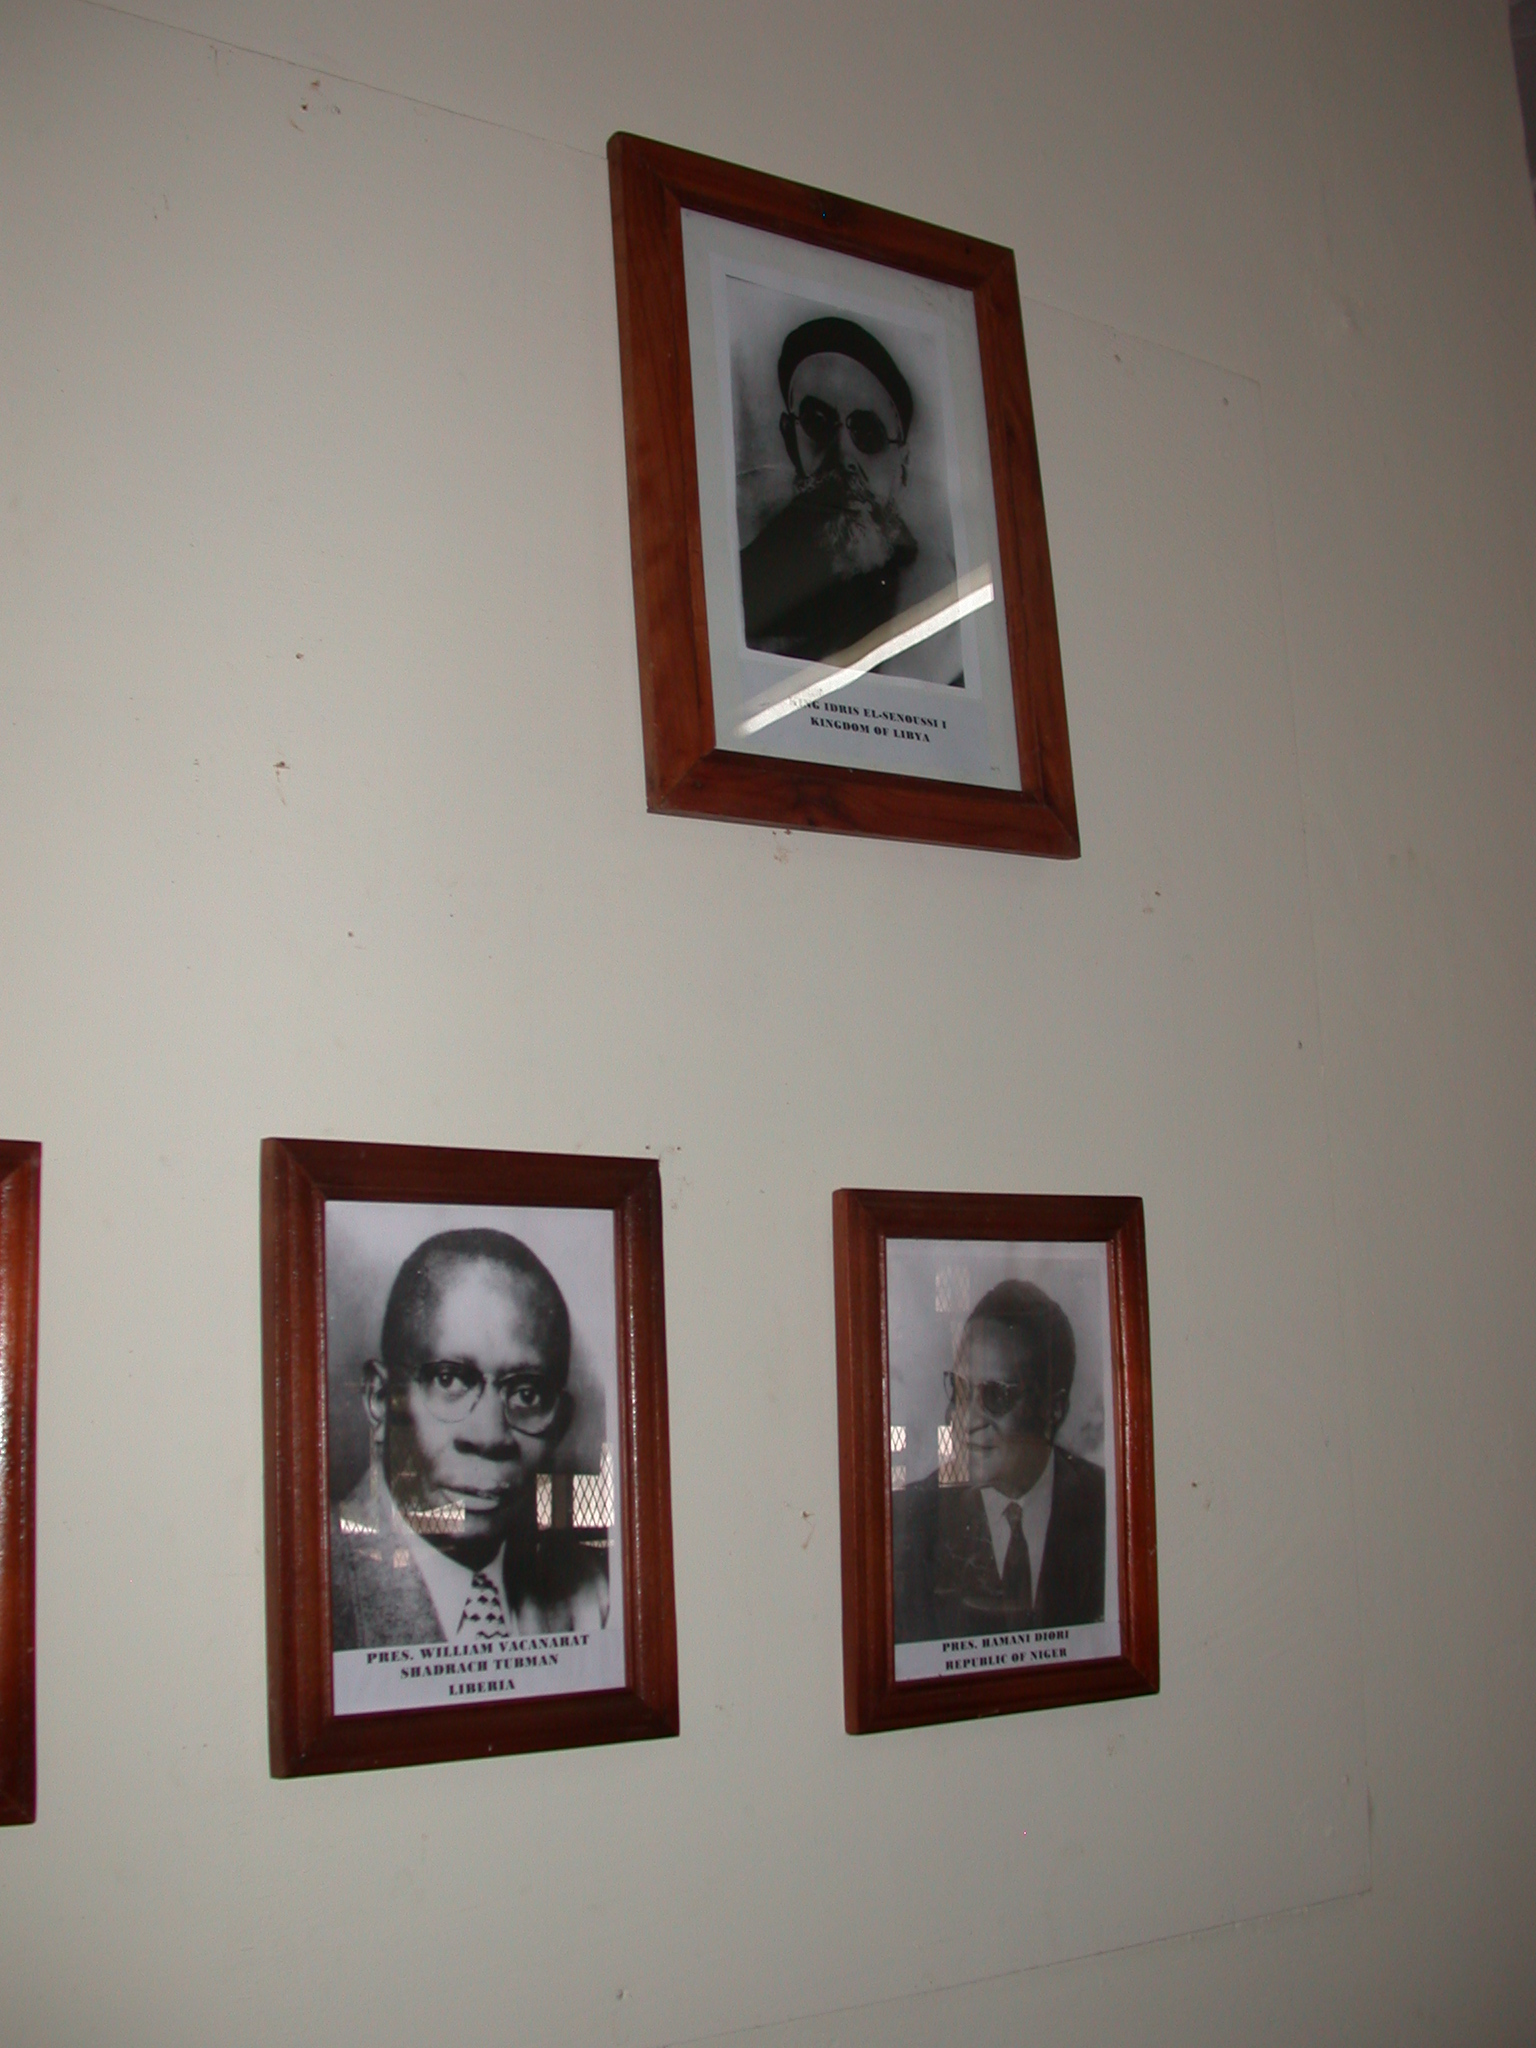 Photographs of African Freedom Fighters and Leaders, WEB DuBois Memorial Centre for Pan African Culture, Accra, Ghana